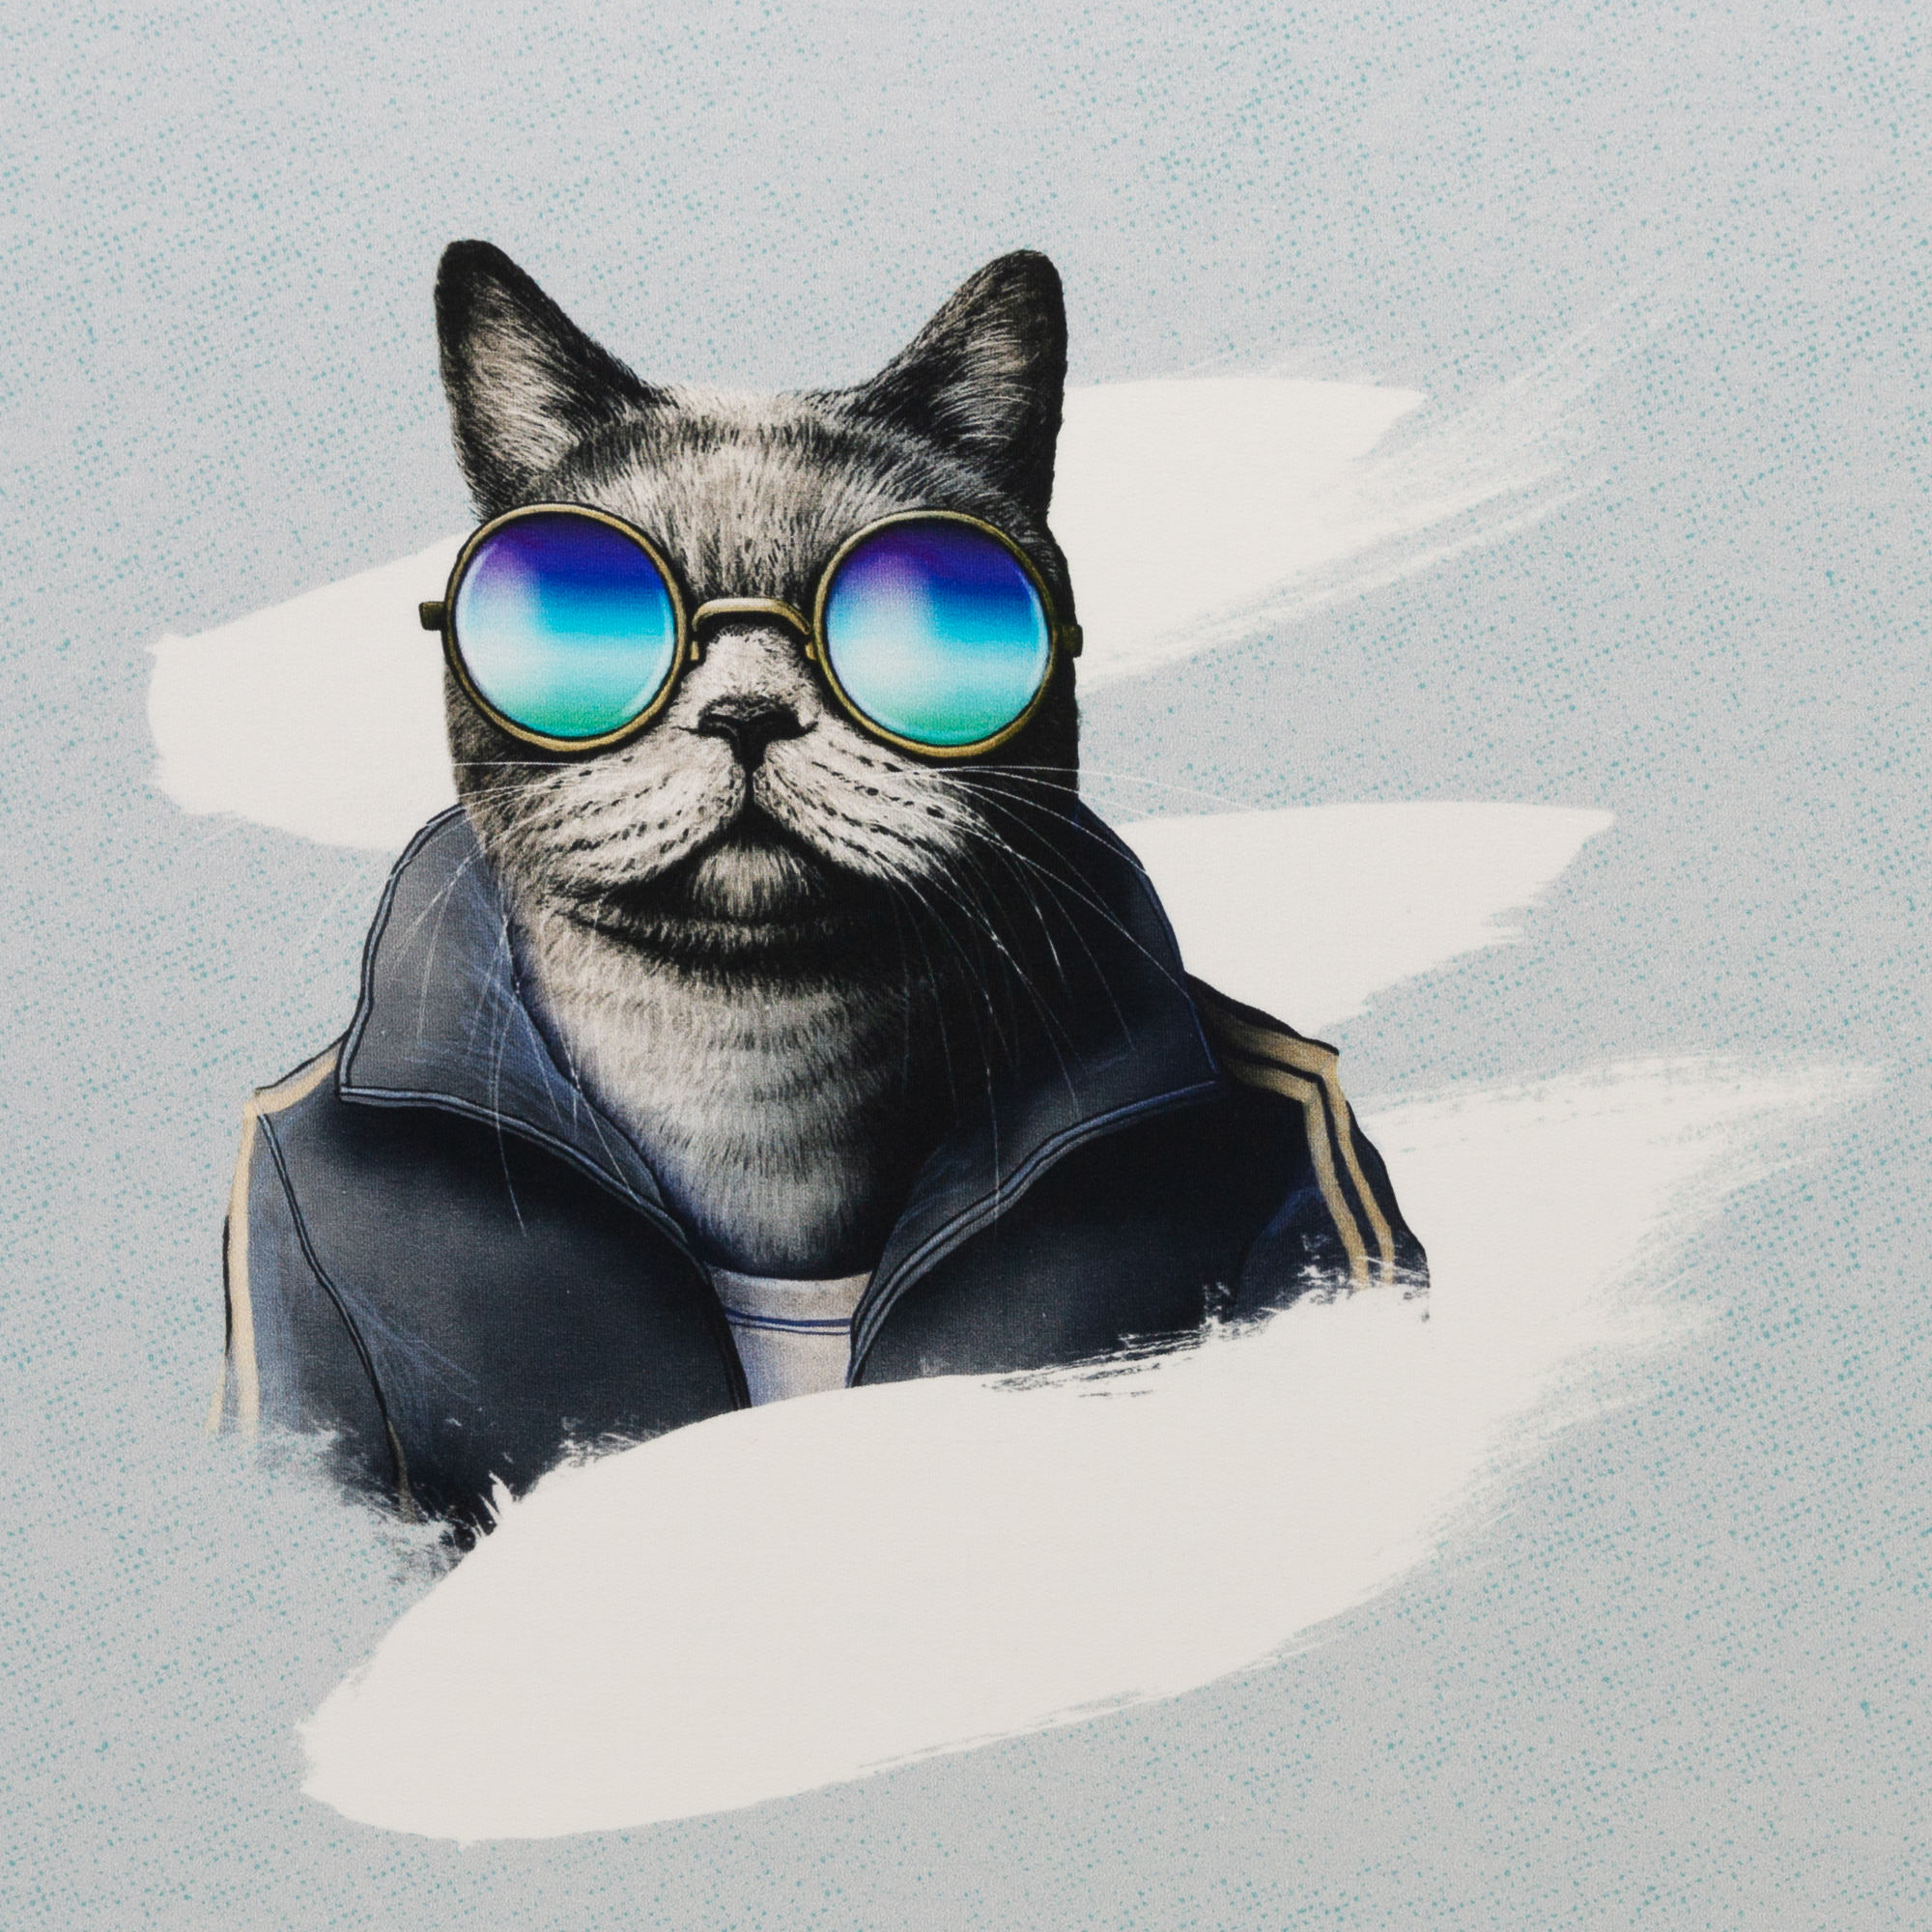 Sporty Cat by Thorsten Berger - Panel